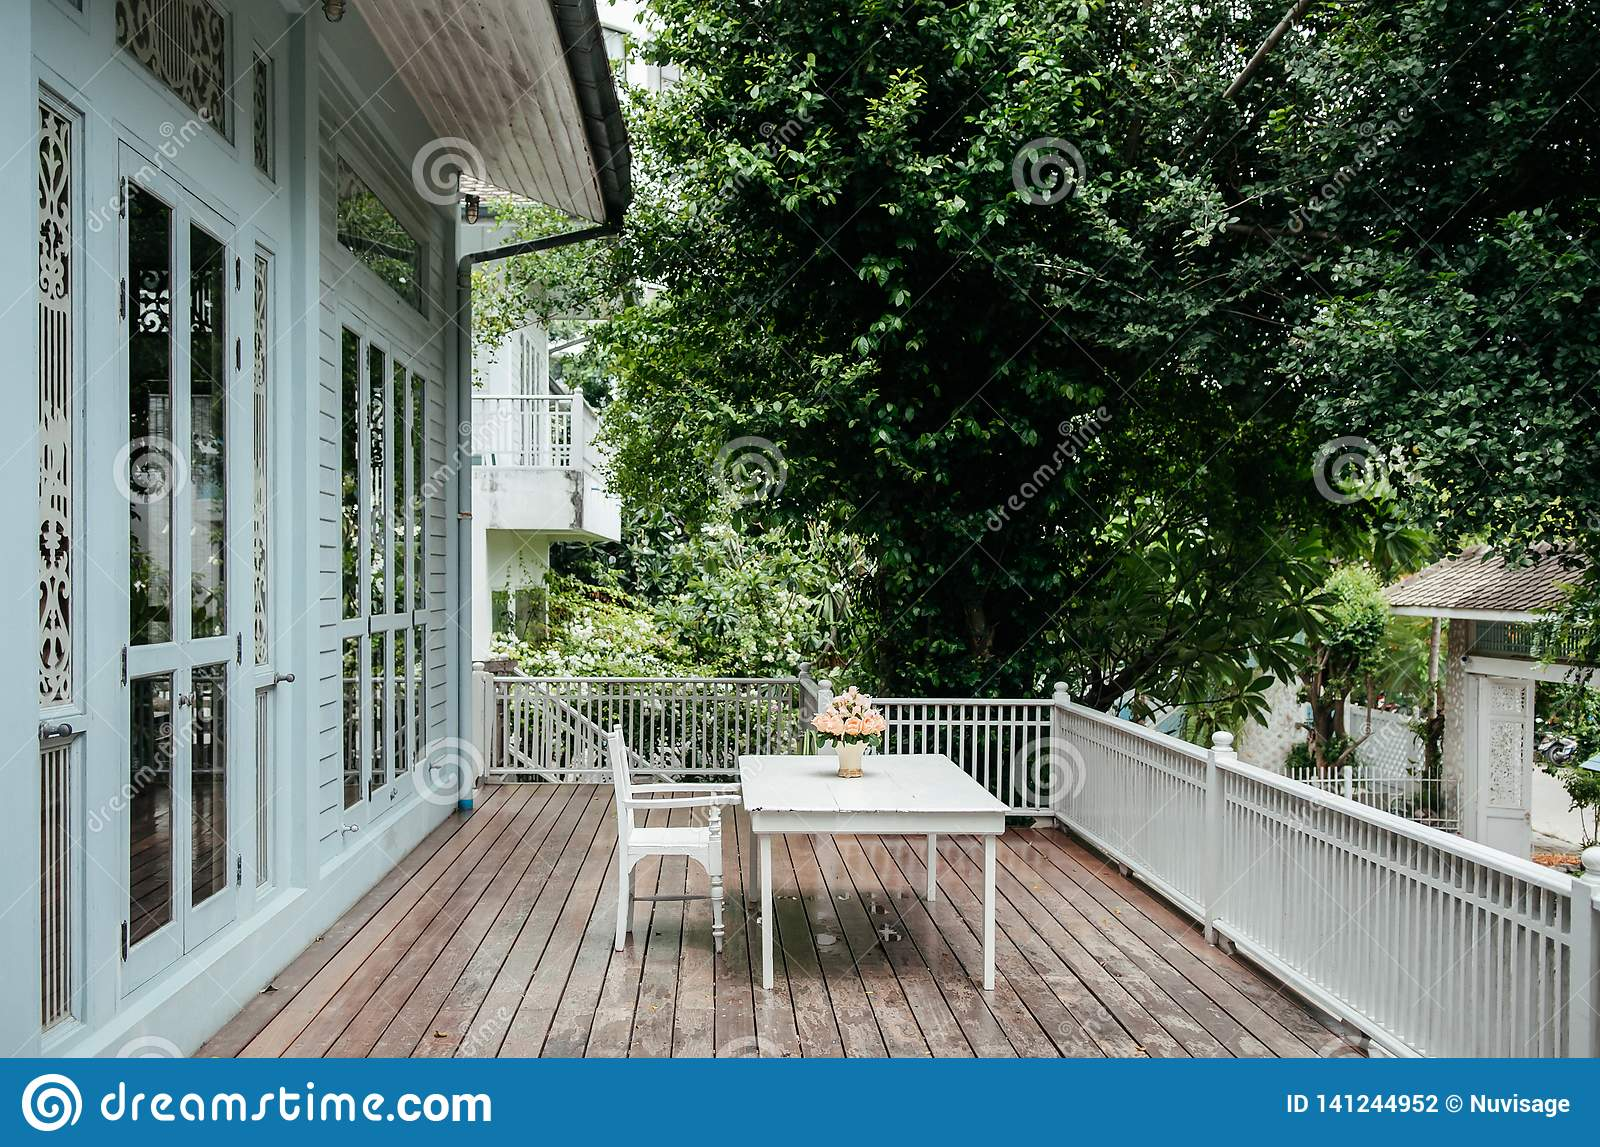 Oriental Vintage Home With Outdoor Wooden Furniture In Old